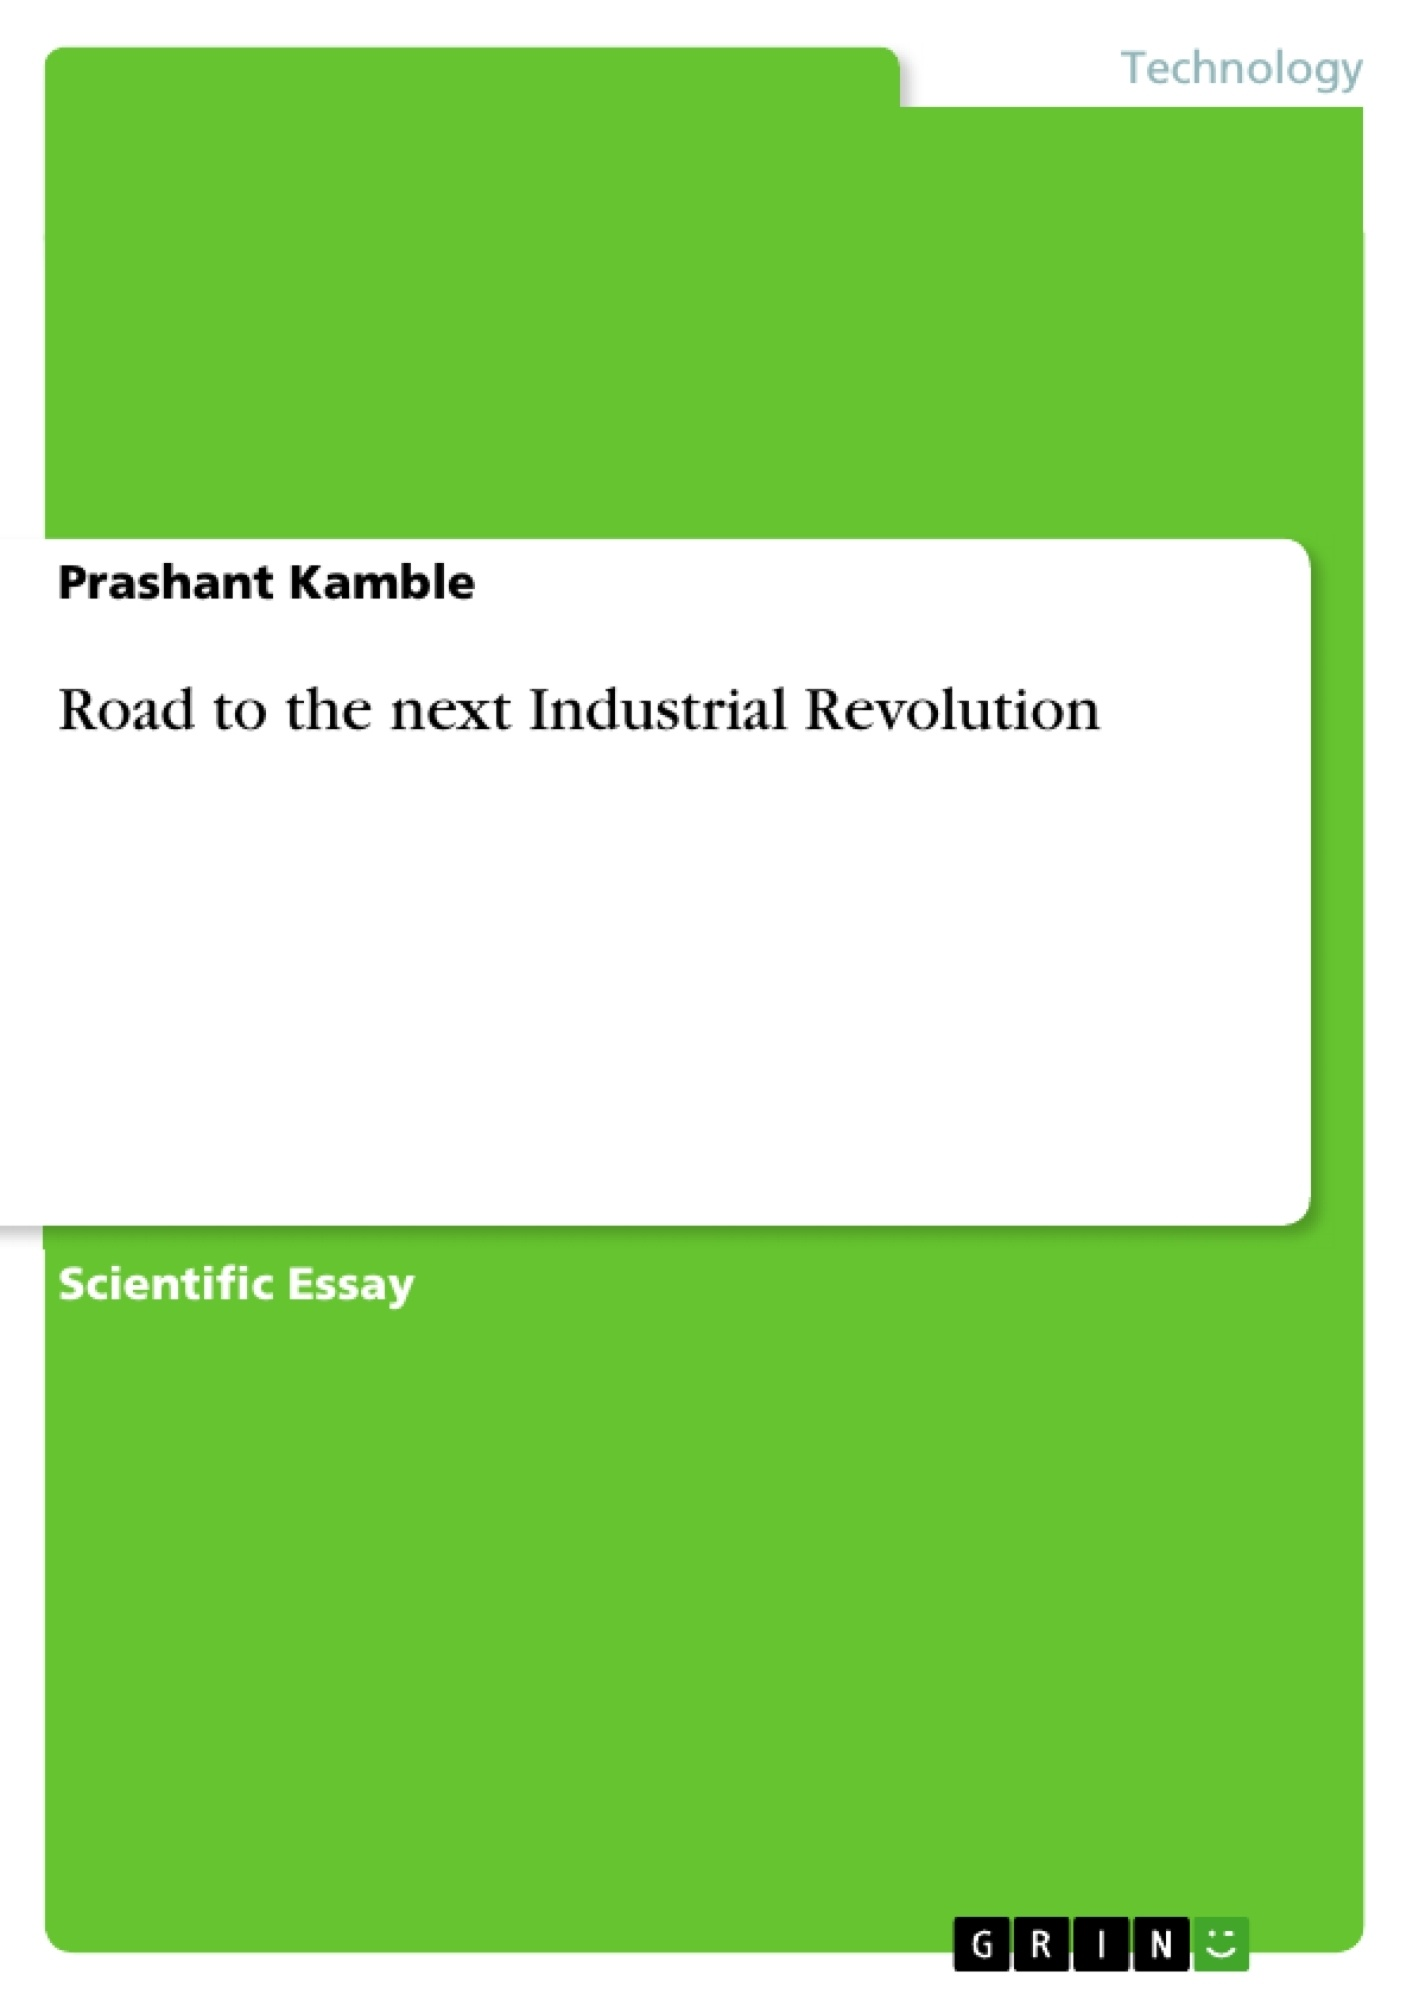 Title: Road to the next Industrial Revolution